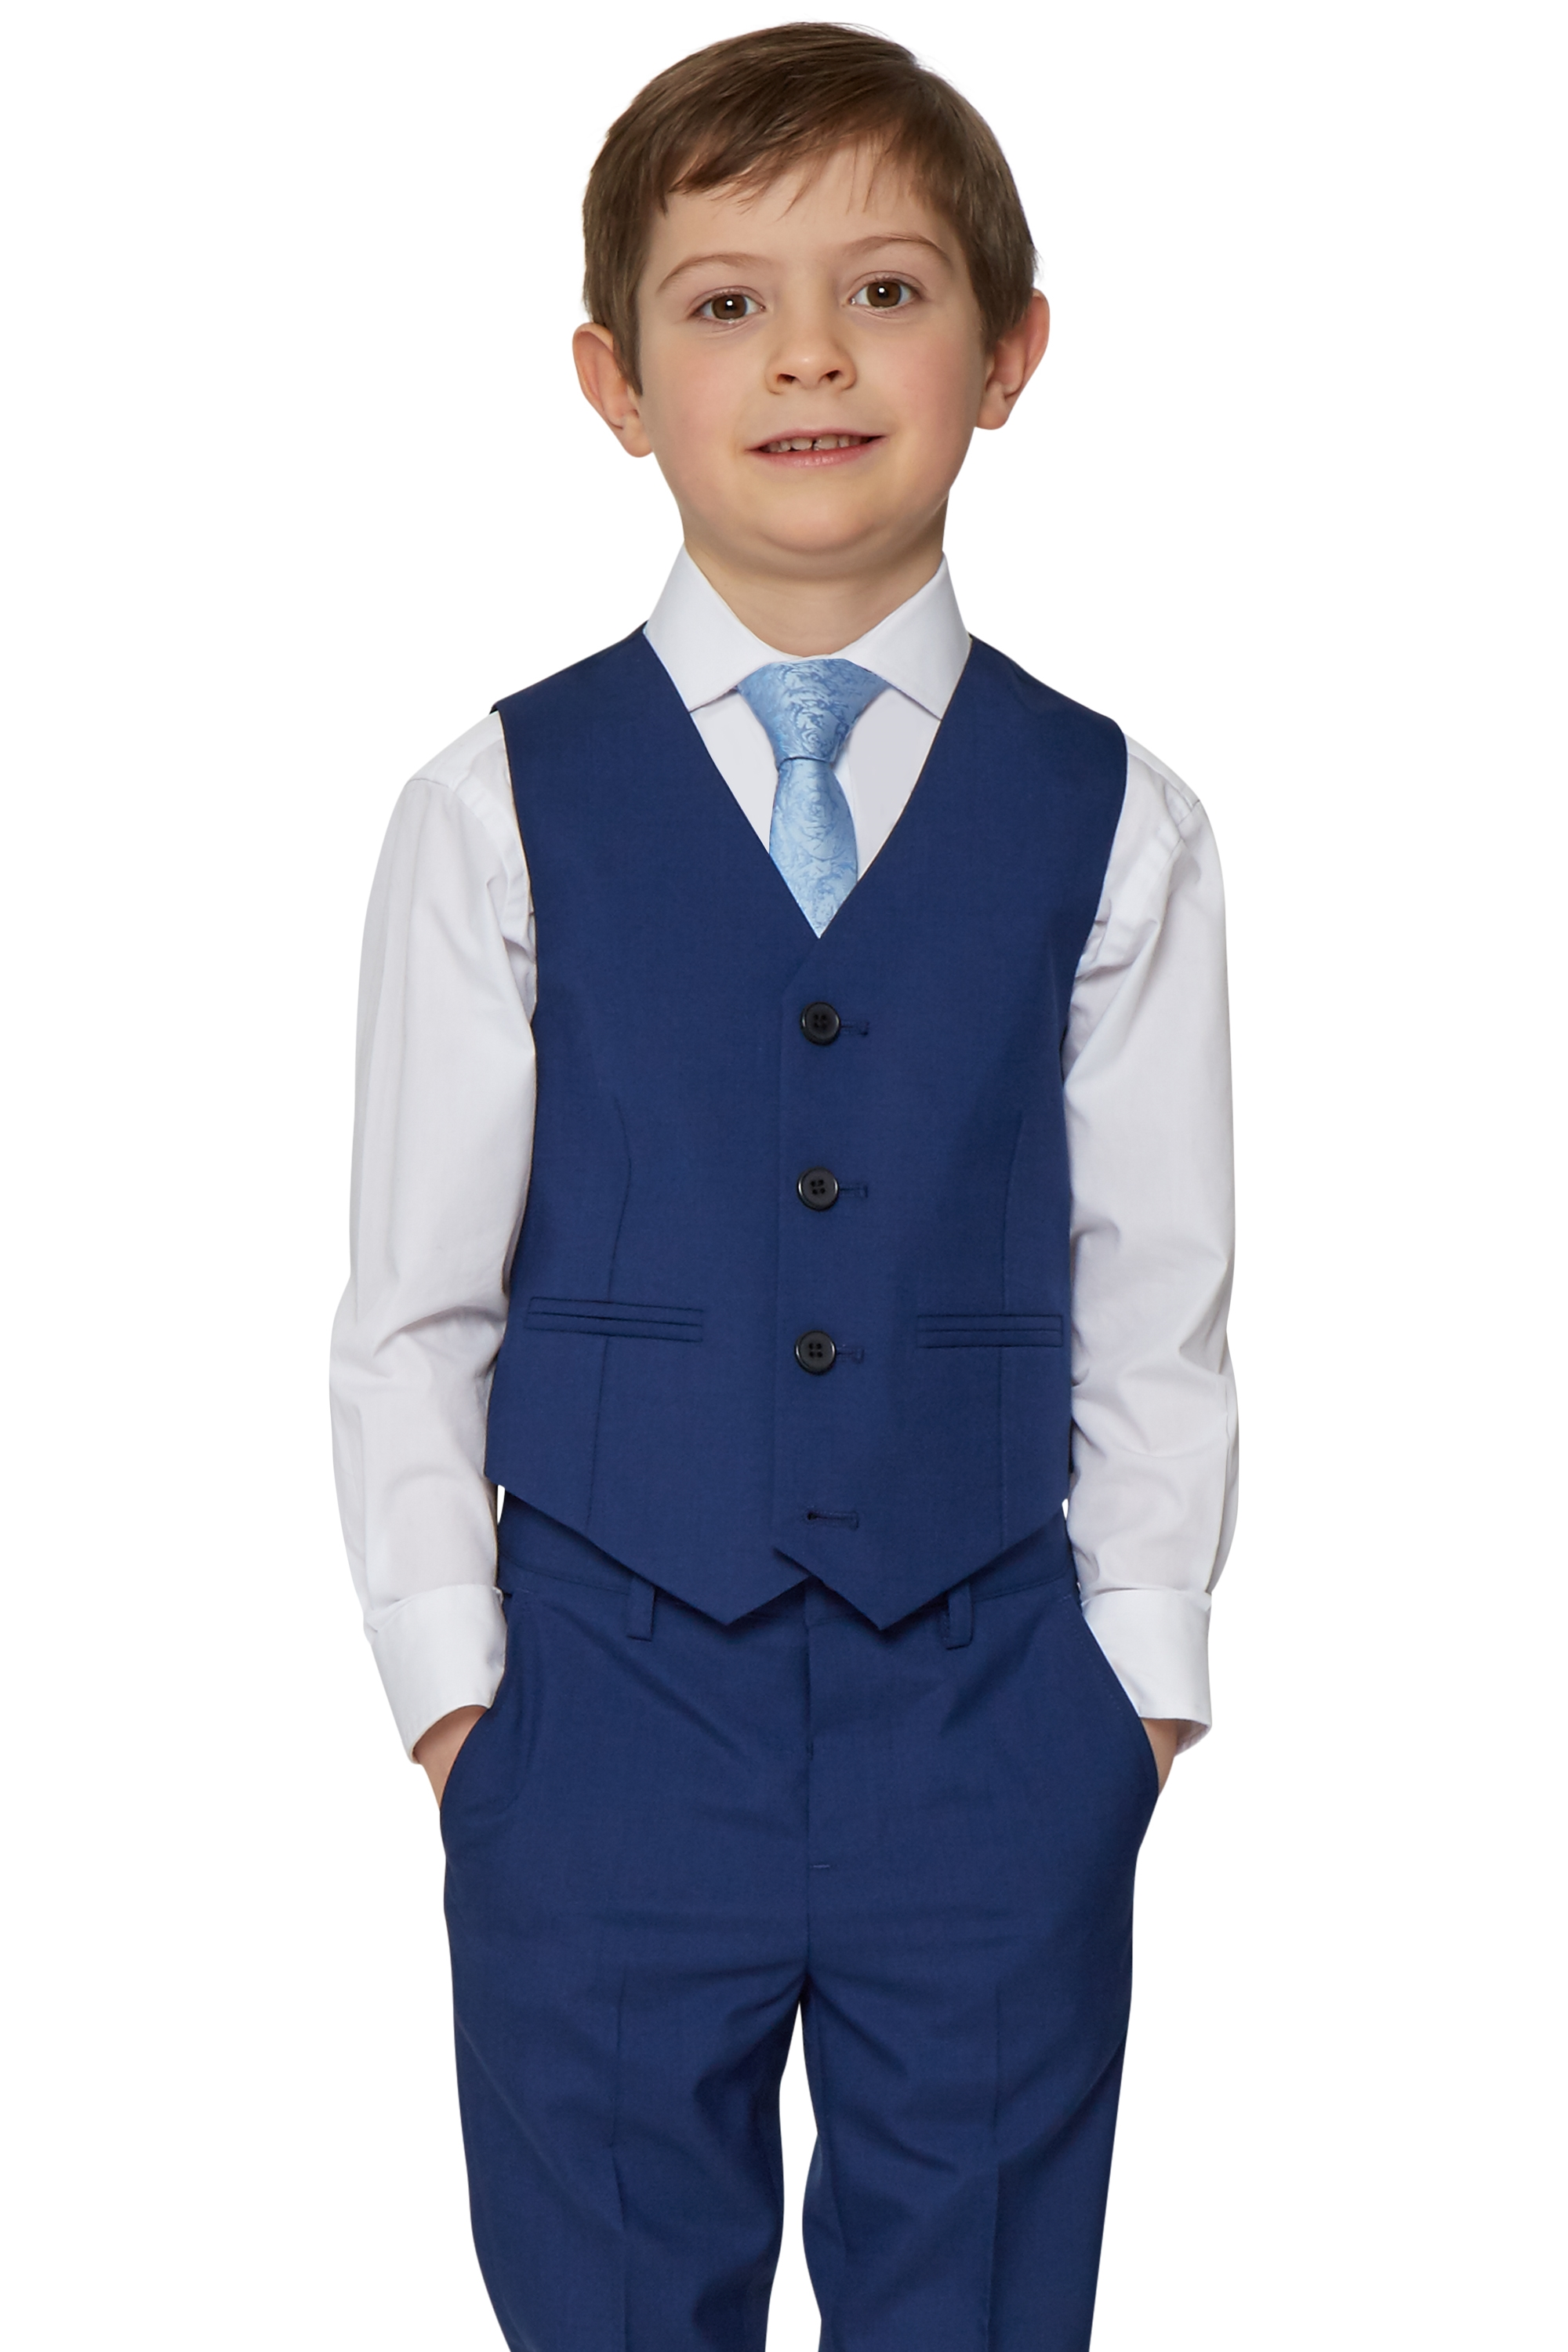 Shop boy's clothes including suits, suit separates, dress shirts, dress pants, dress shoes and more. Find suits for boys at Men's Wearhouse.